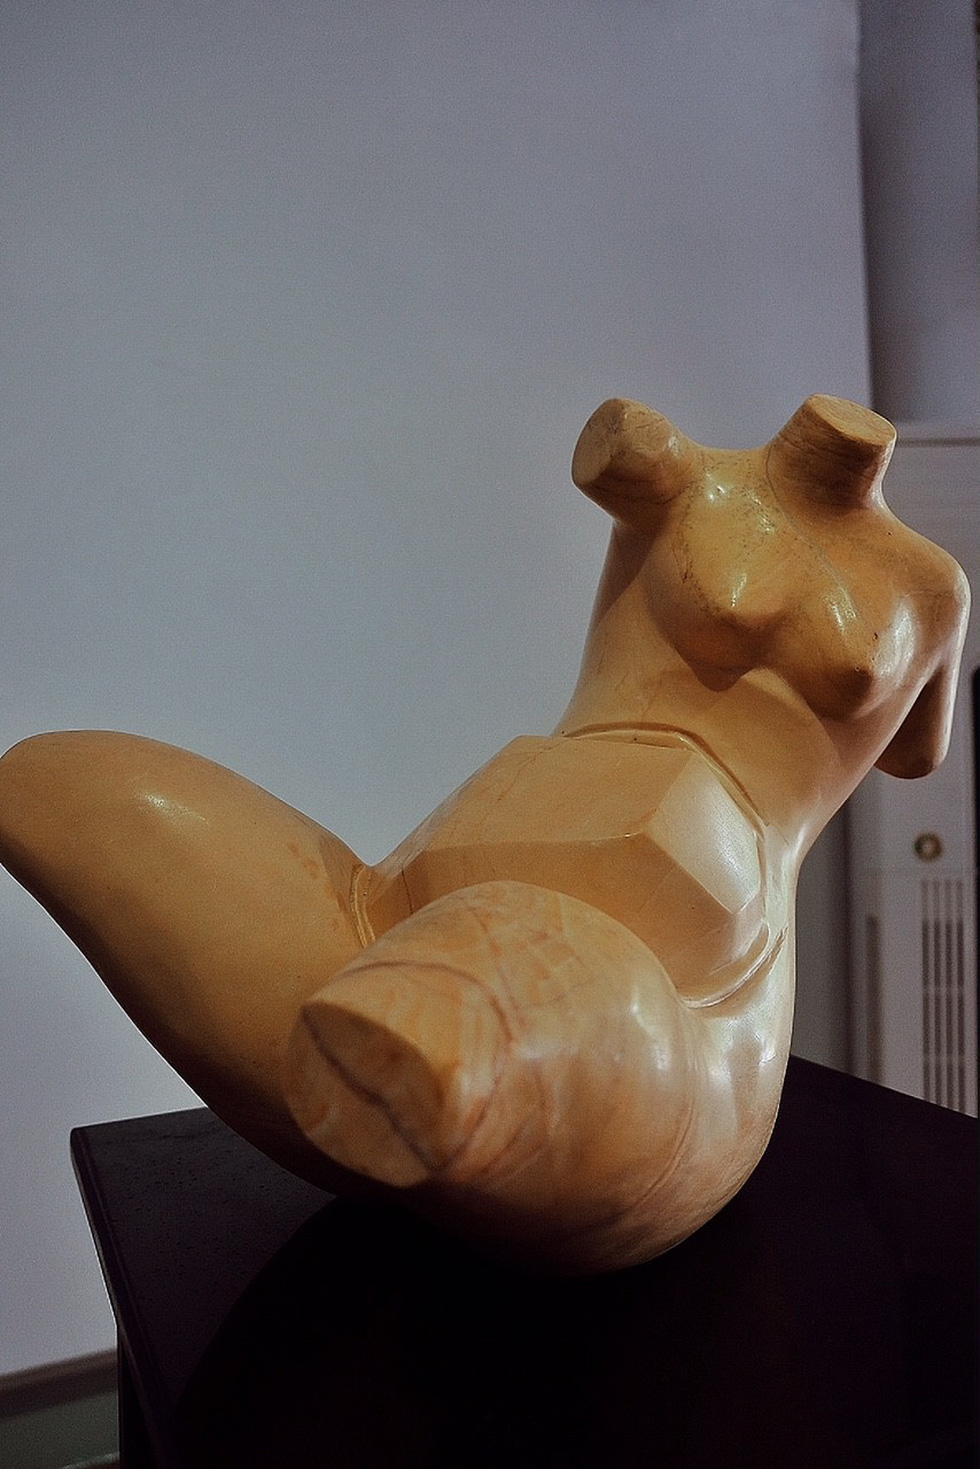 Phan Phuong's Nude 2 at an exhibition in Ho Chi Minh City, Vietnam, December 2018. Photo: Tuoi Tre